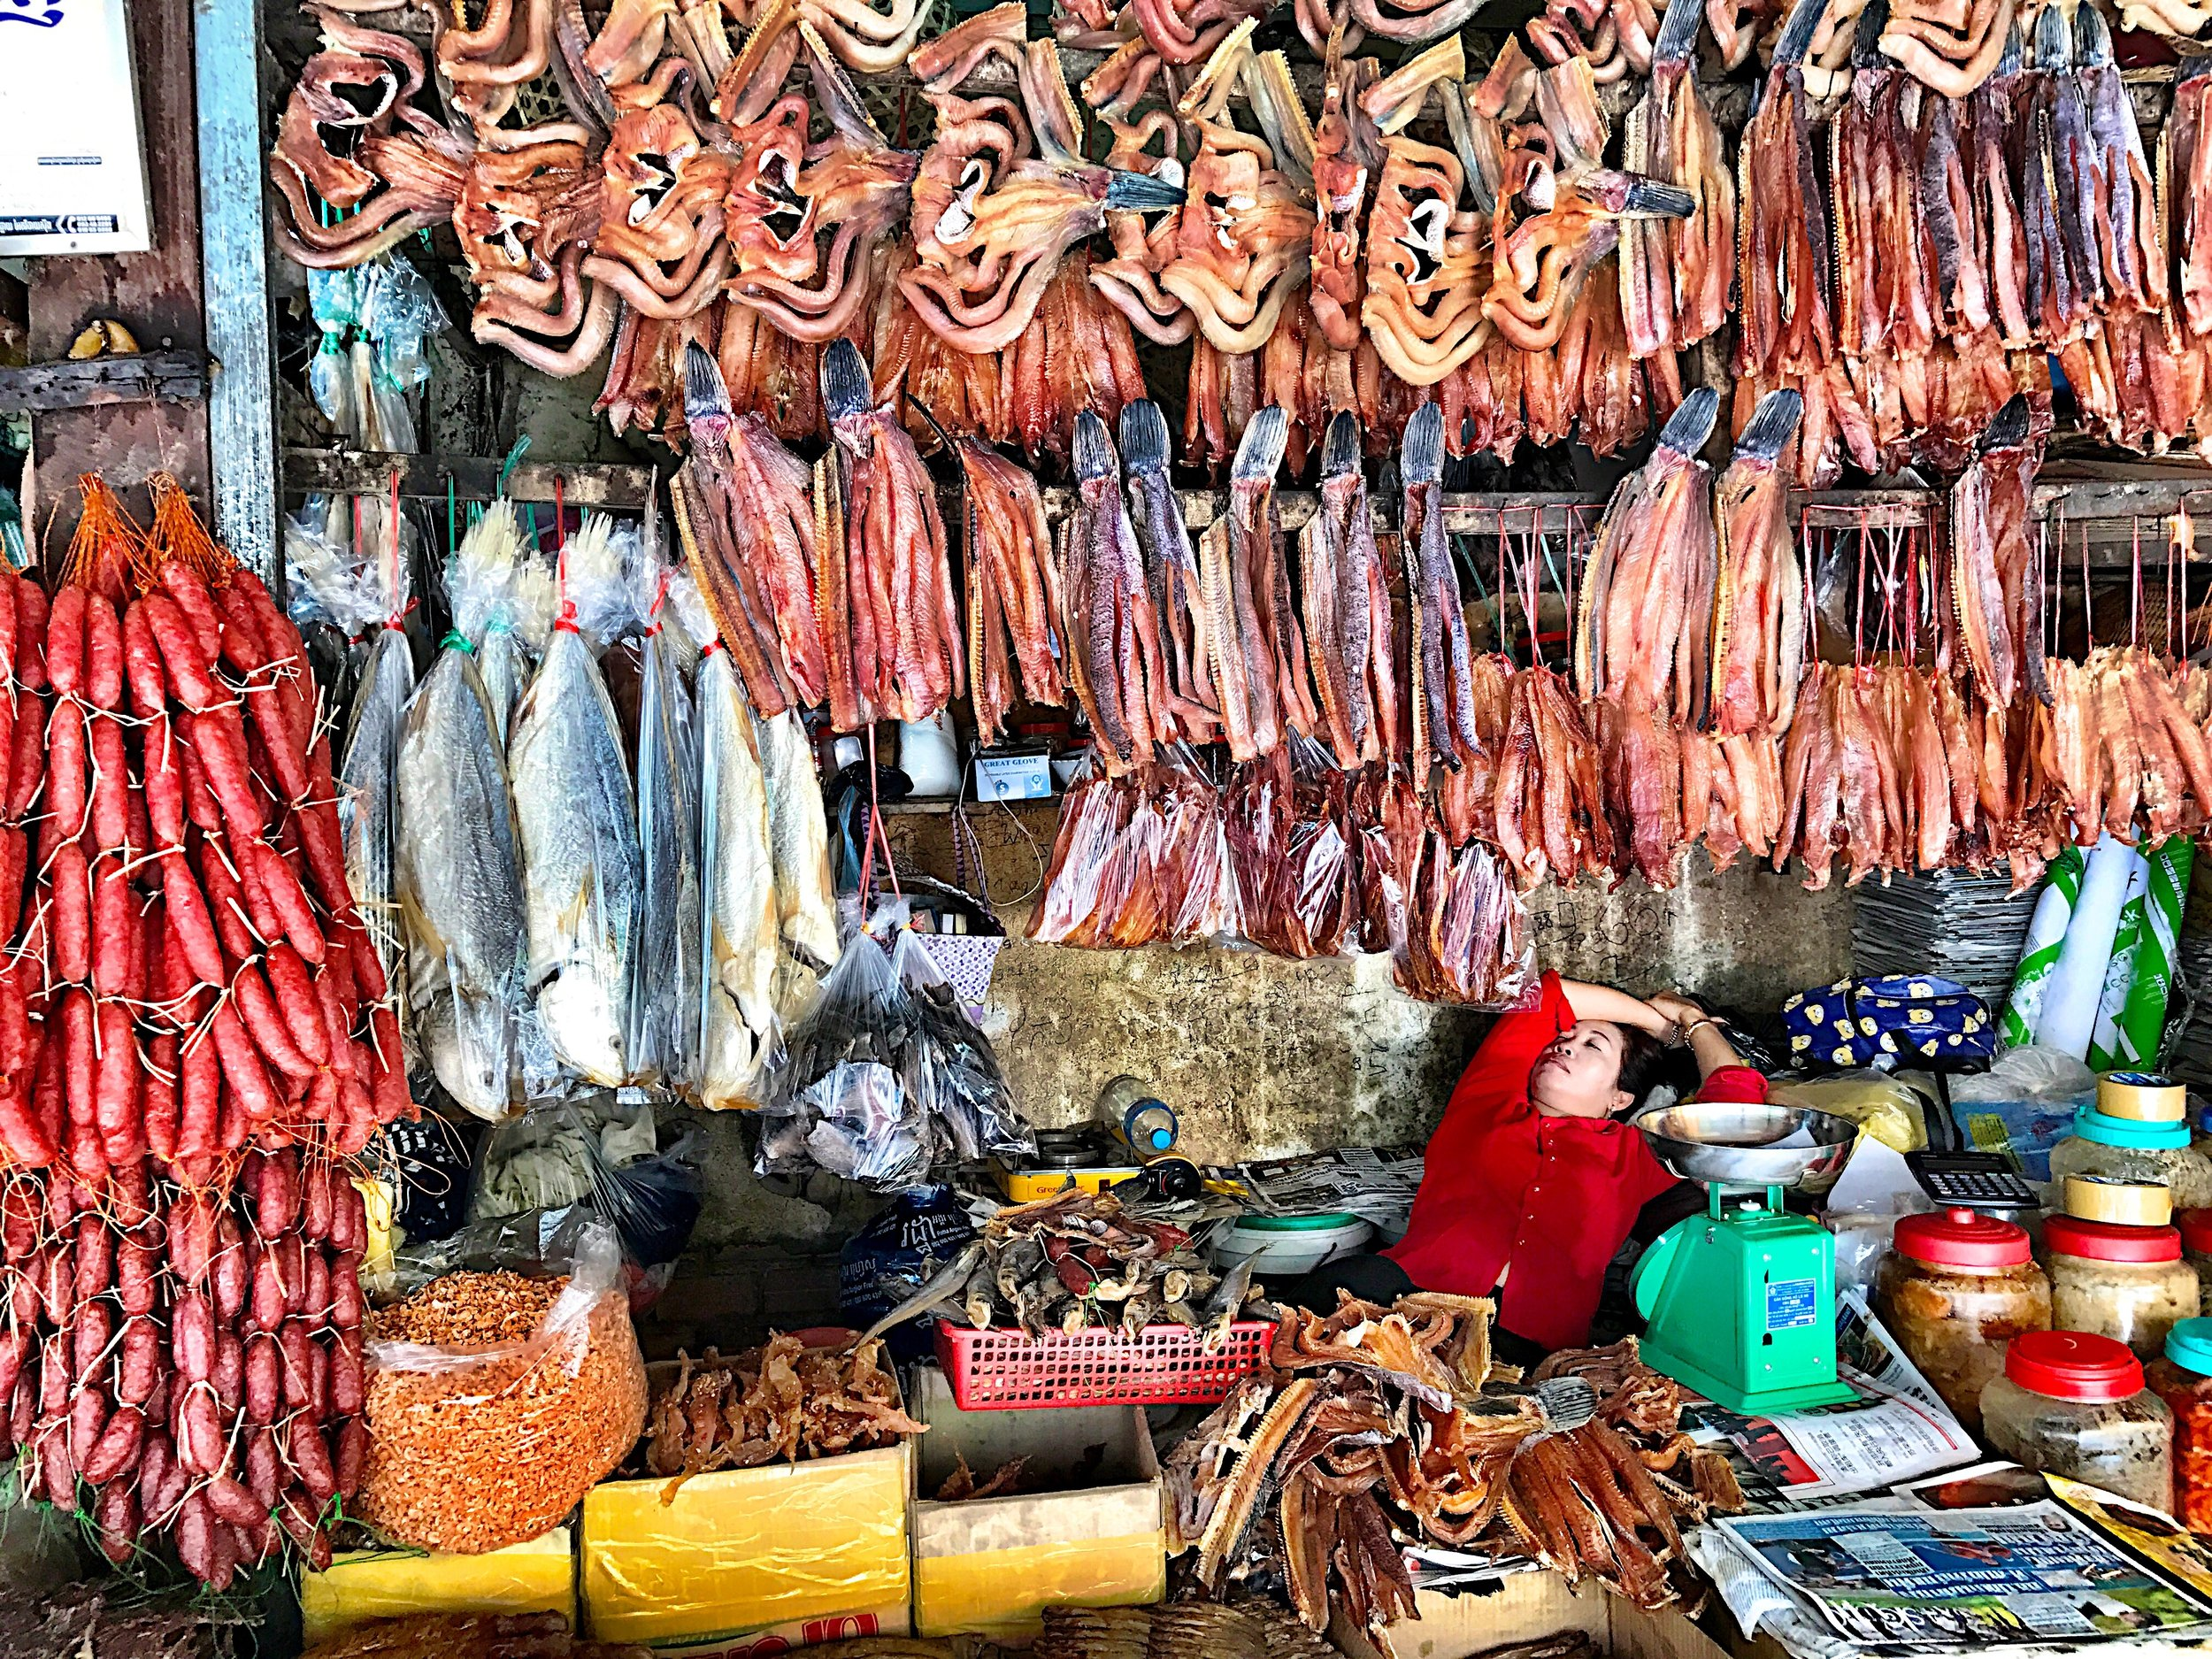 Woman Sleeping in Market Stall, Siem Reap, Cambodia, 2017, Photograph, 22 x 27, 450